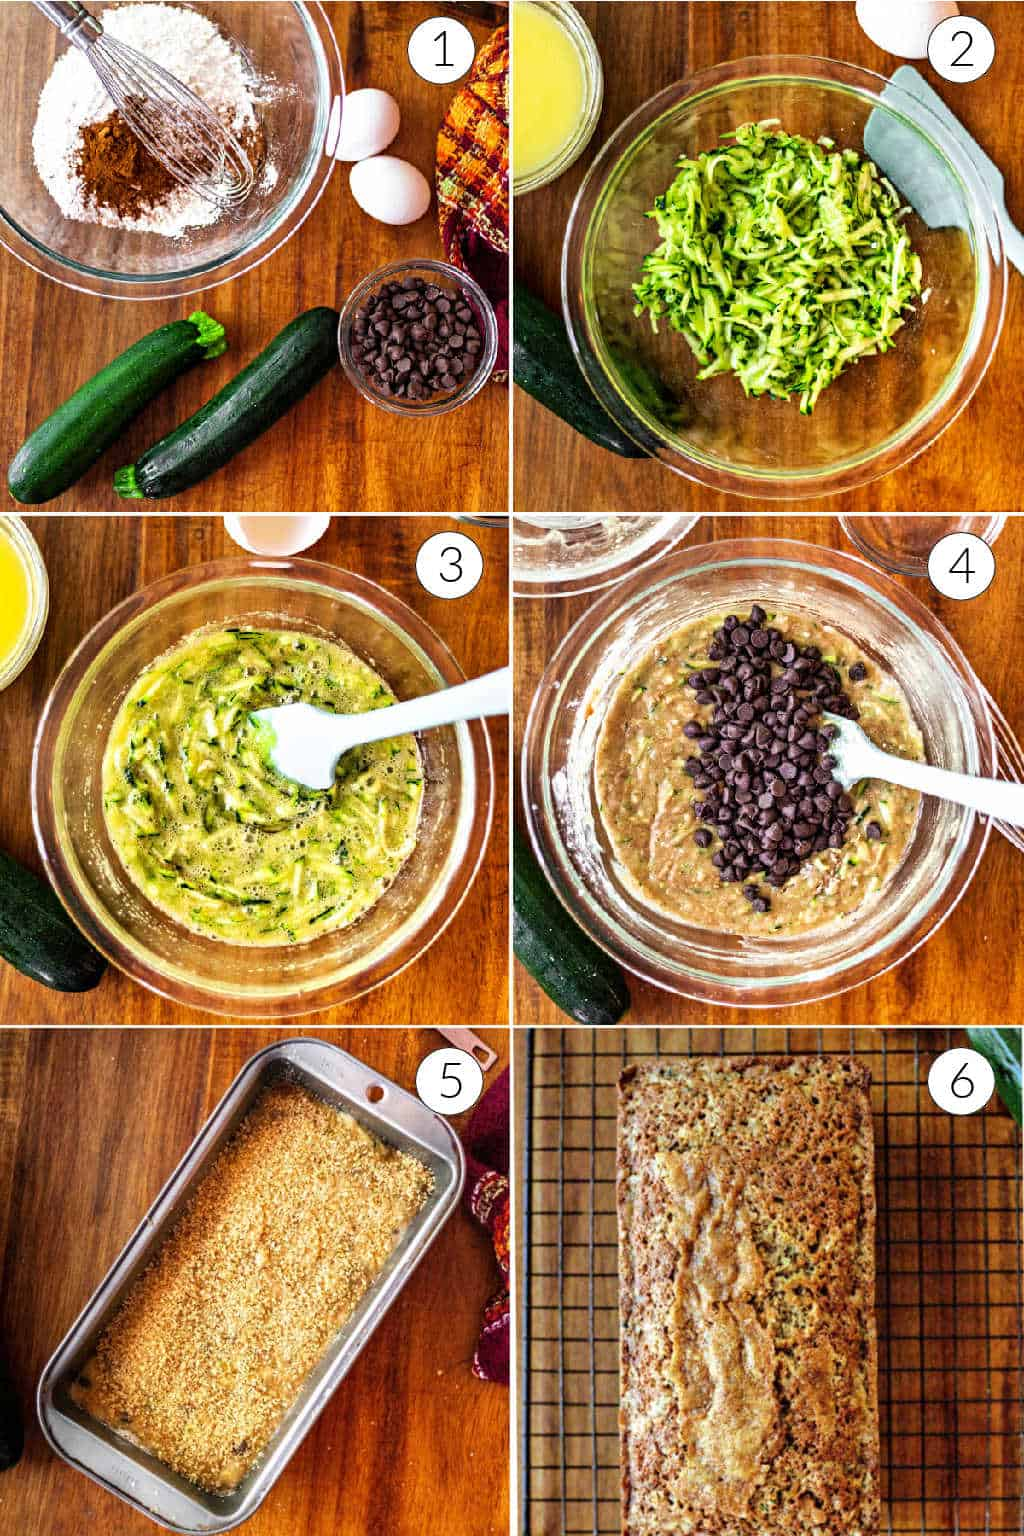 prep steps for making chocolate chip zucchini bread